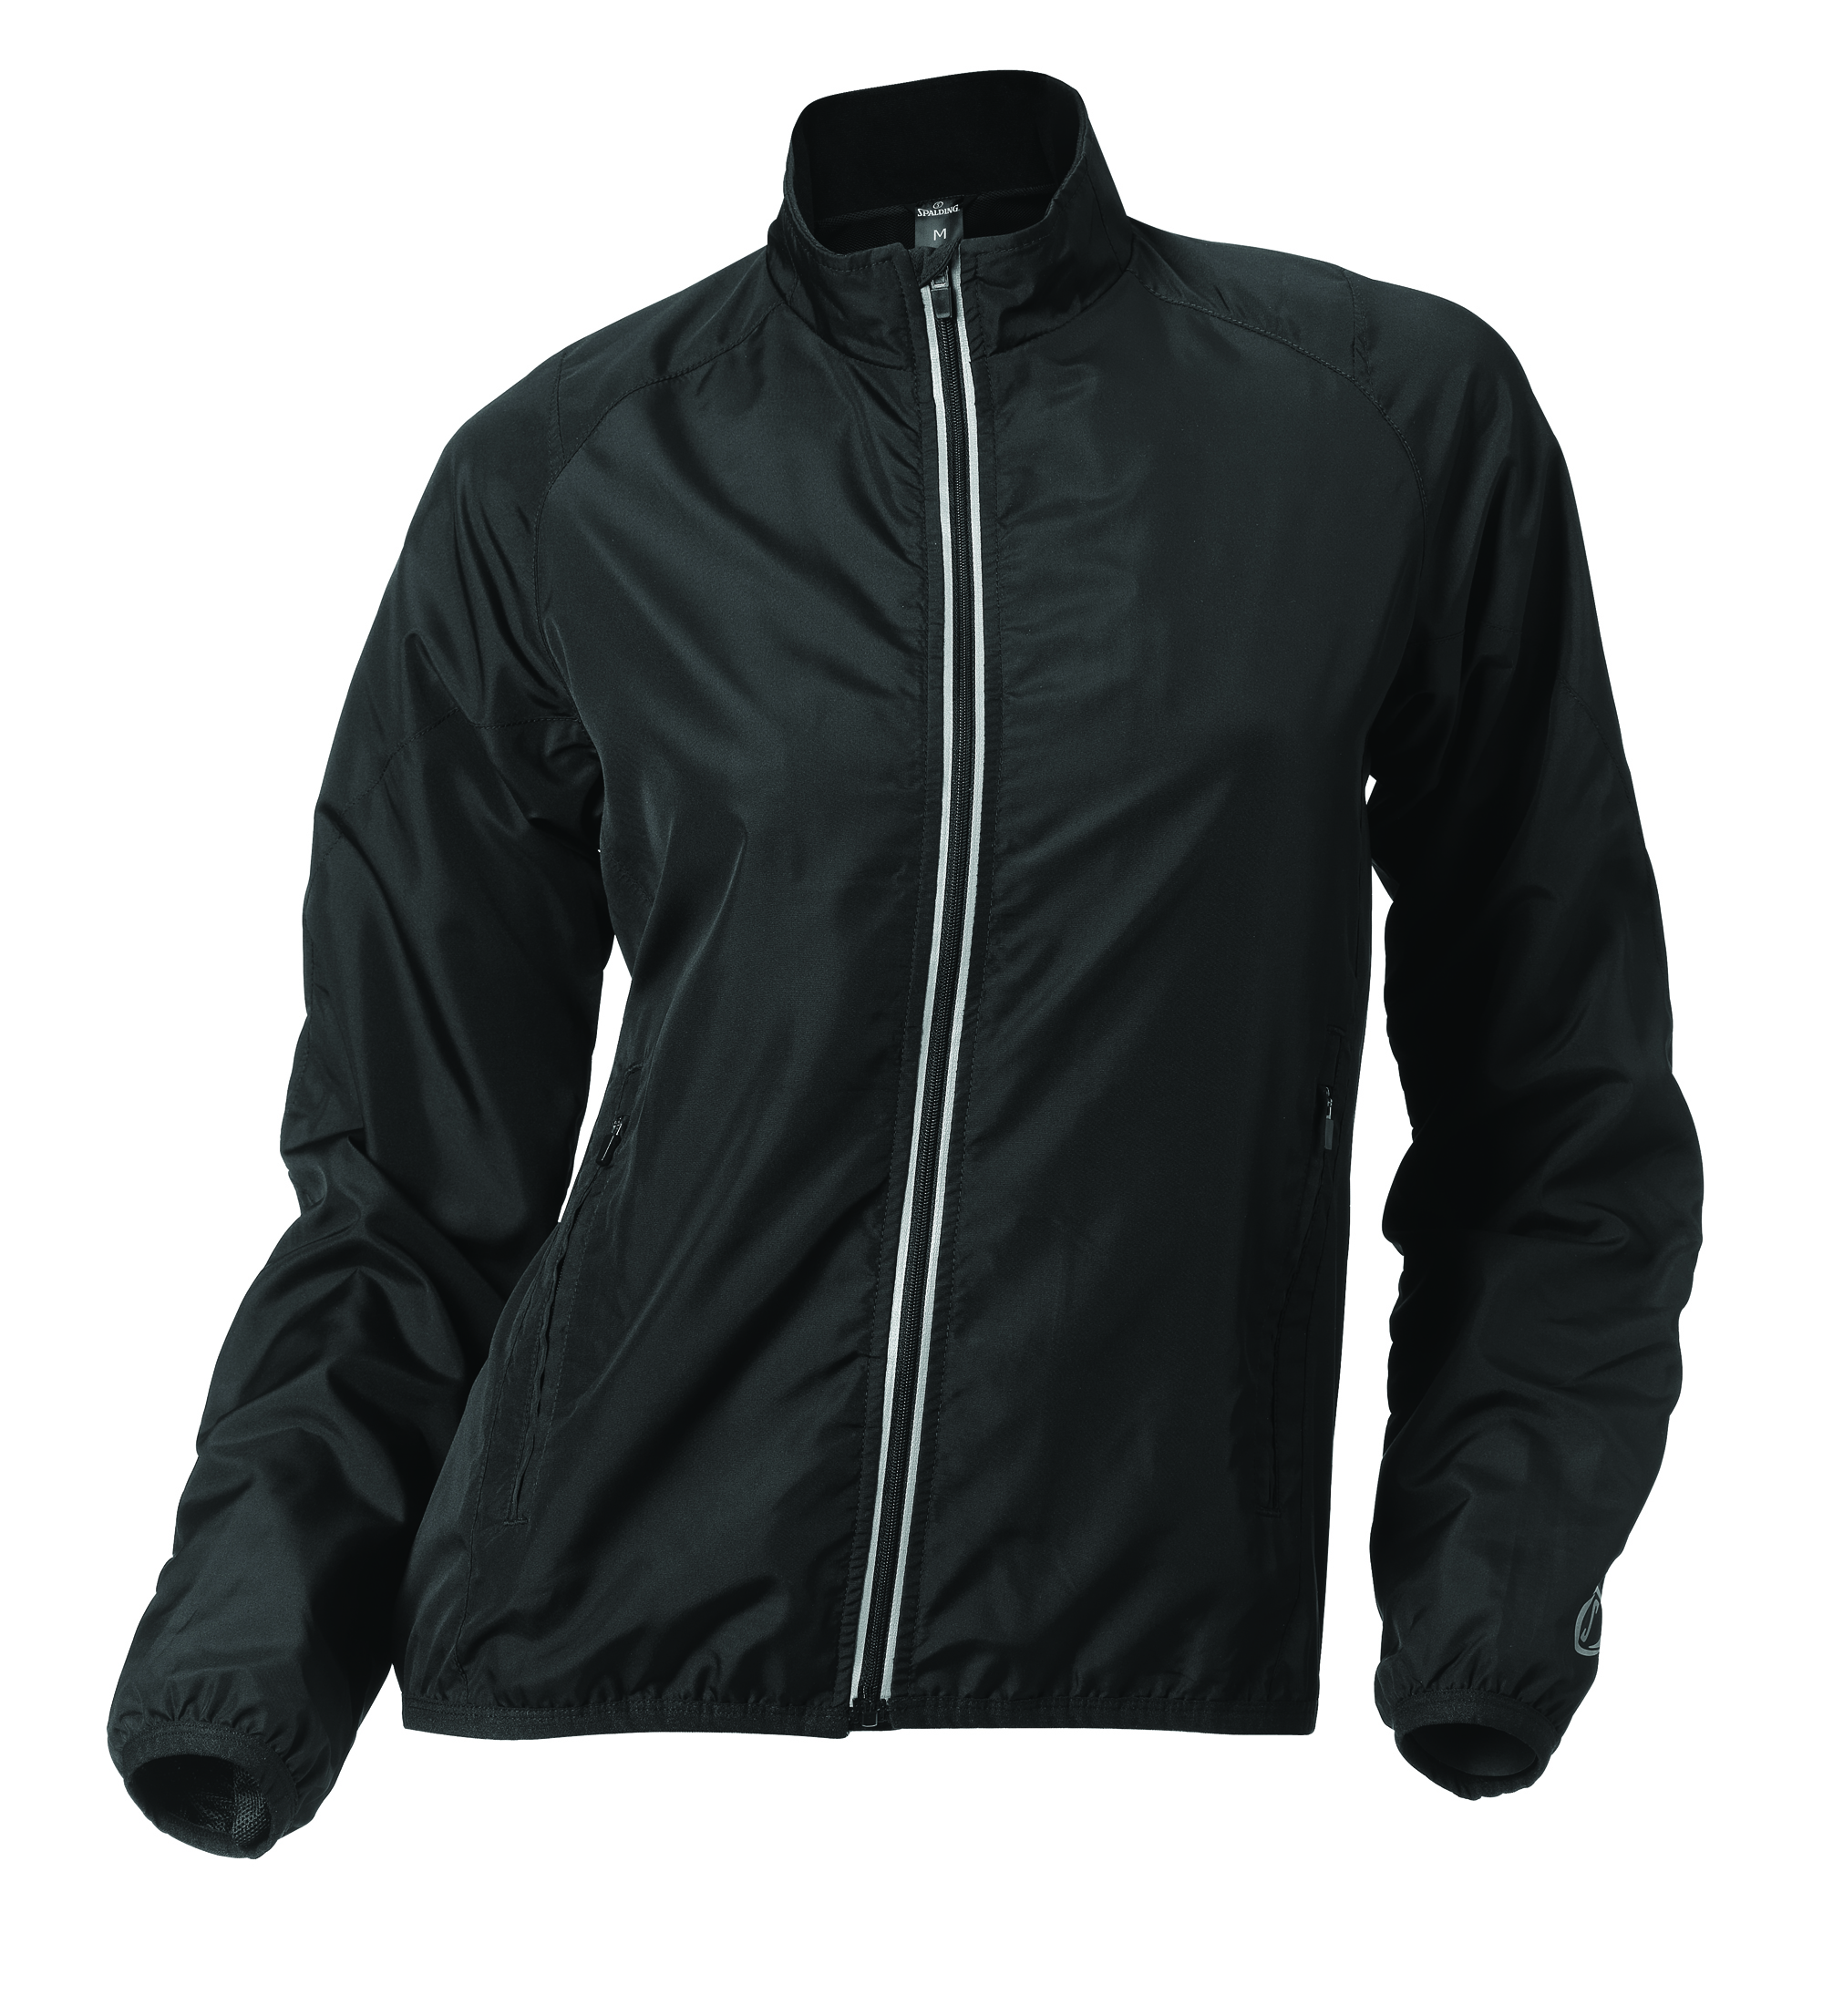 Adrenalin Jacket Women